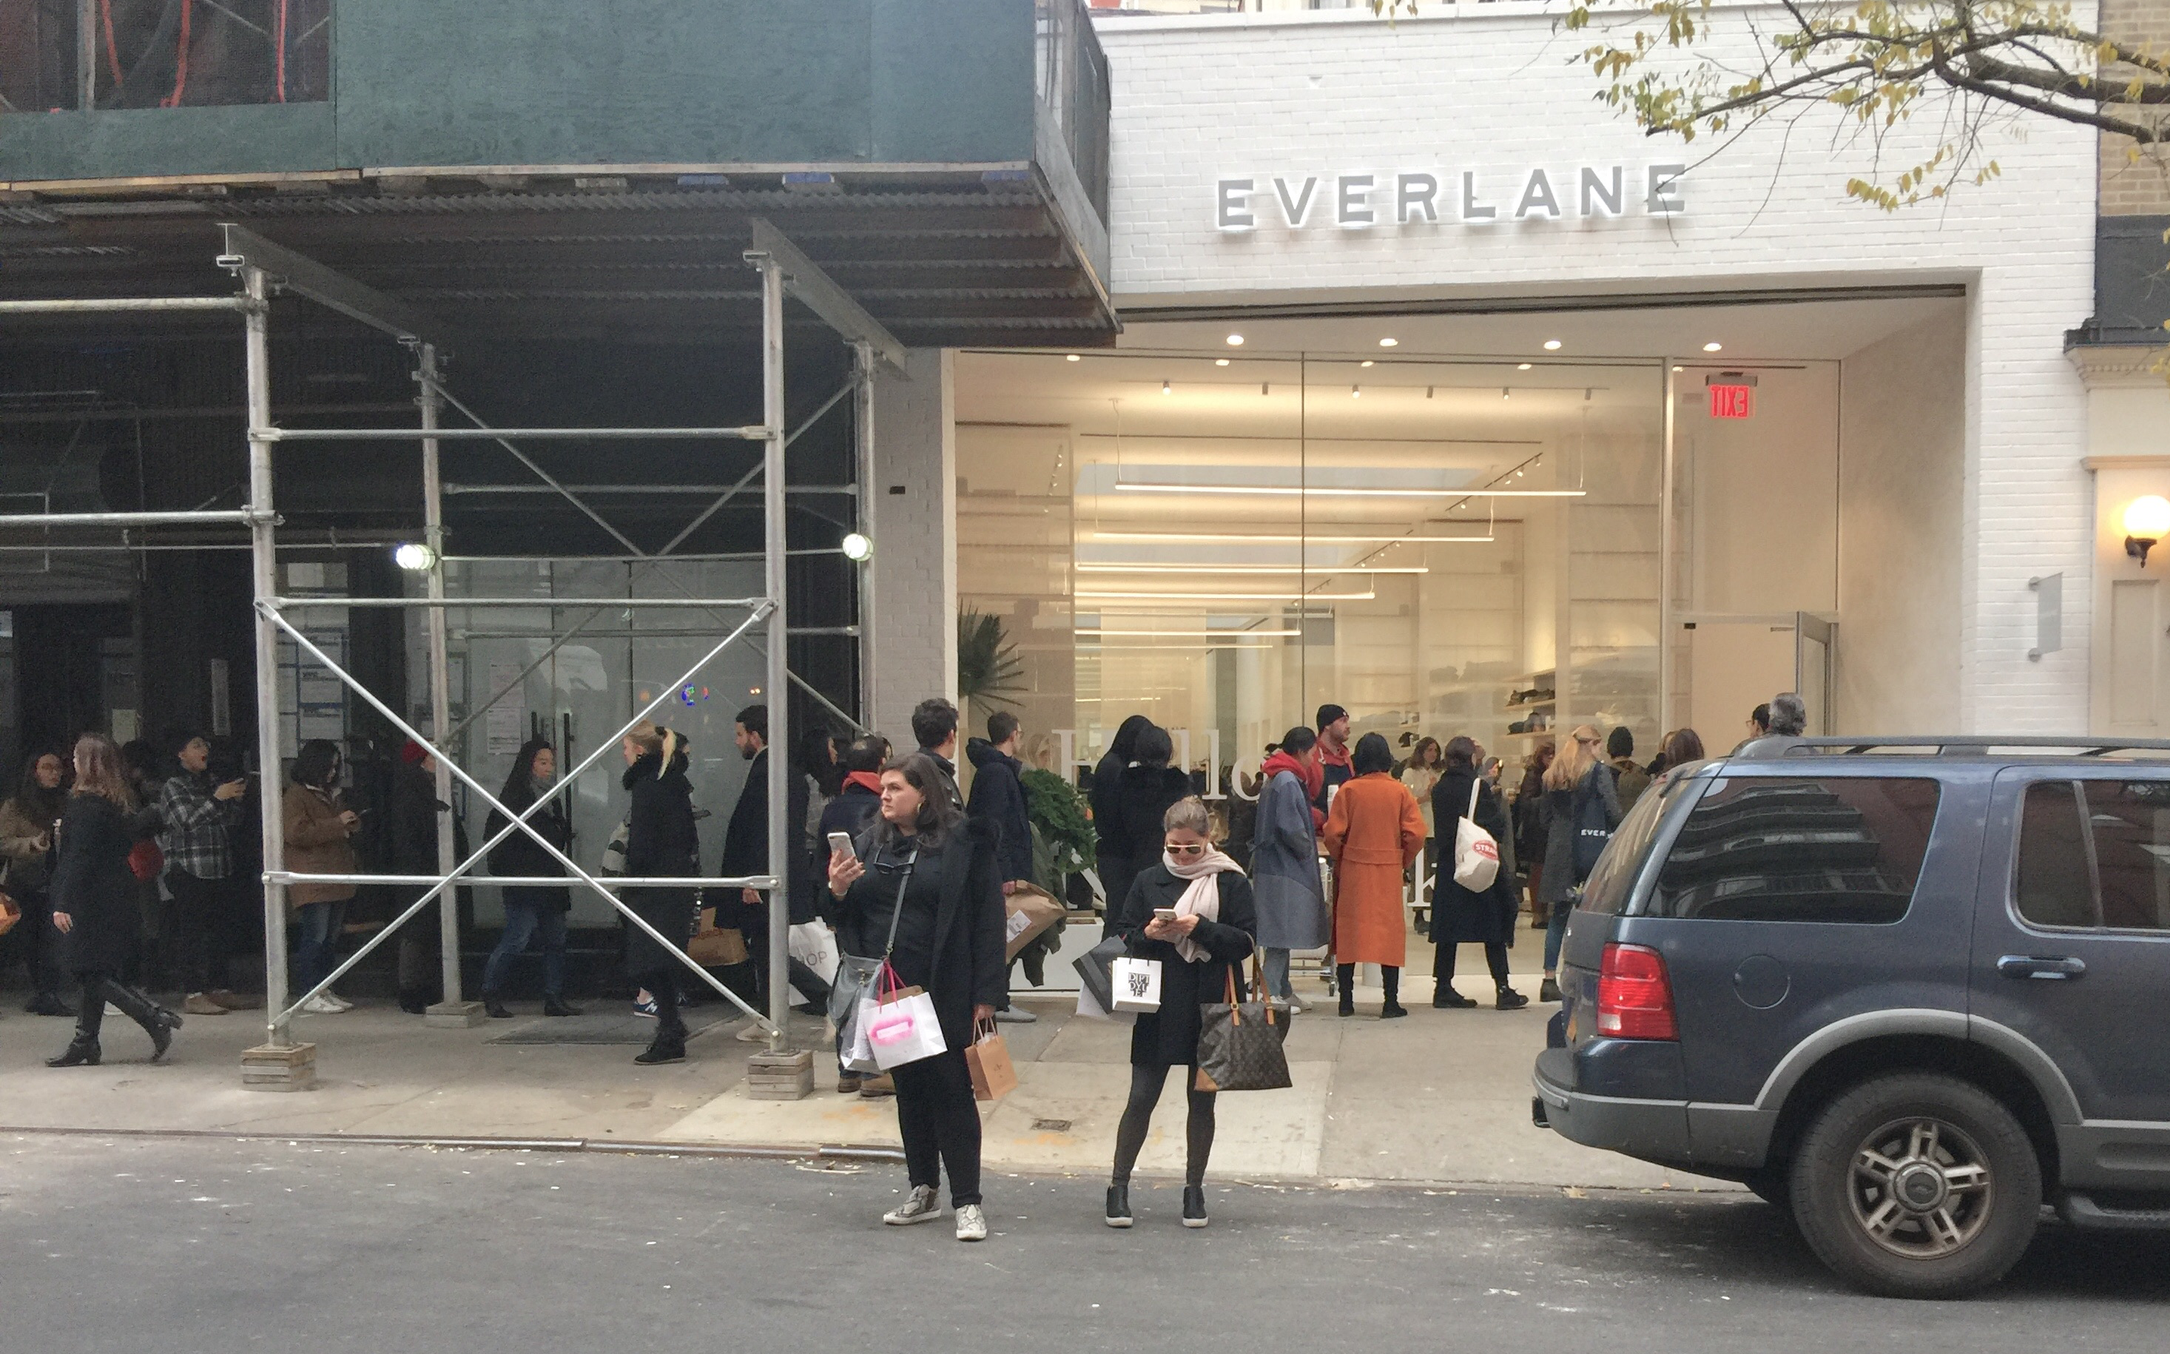 line outside everlane store NYC